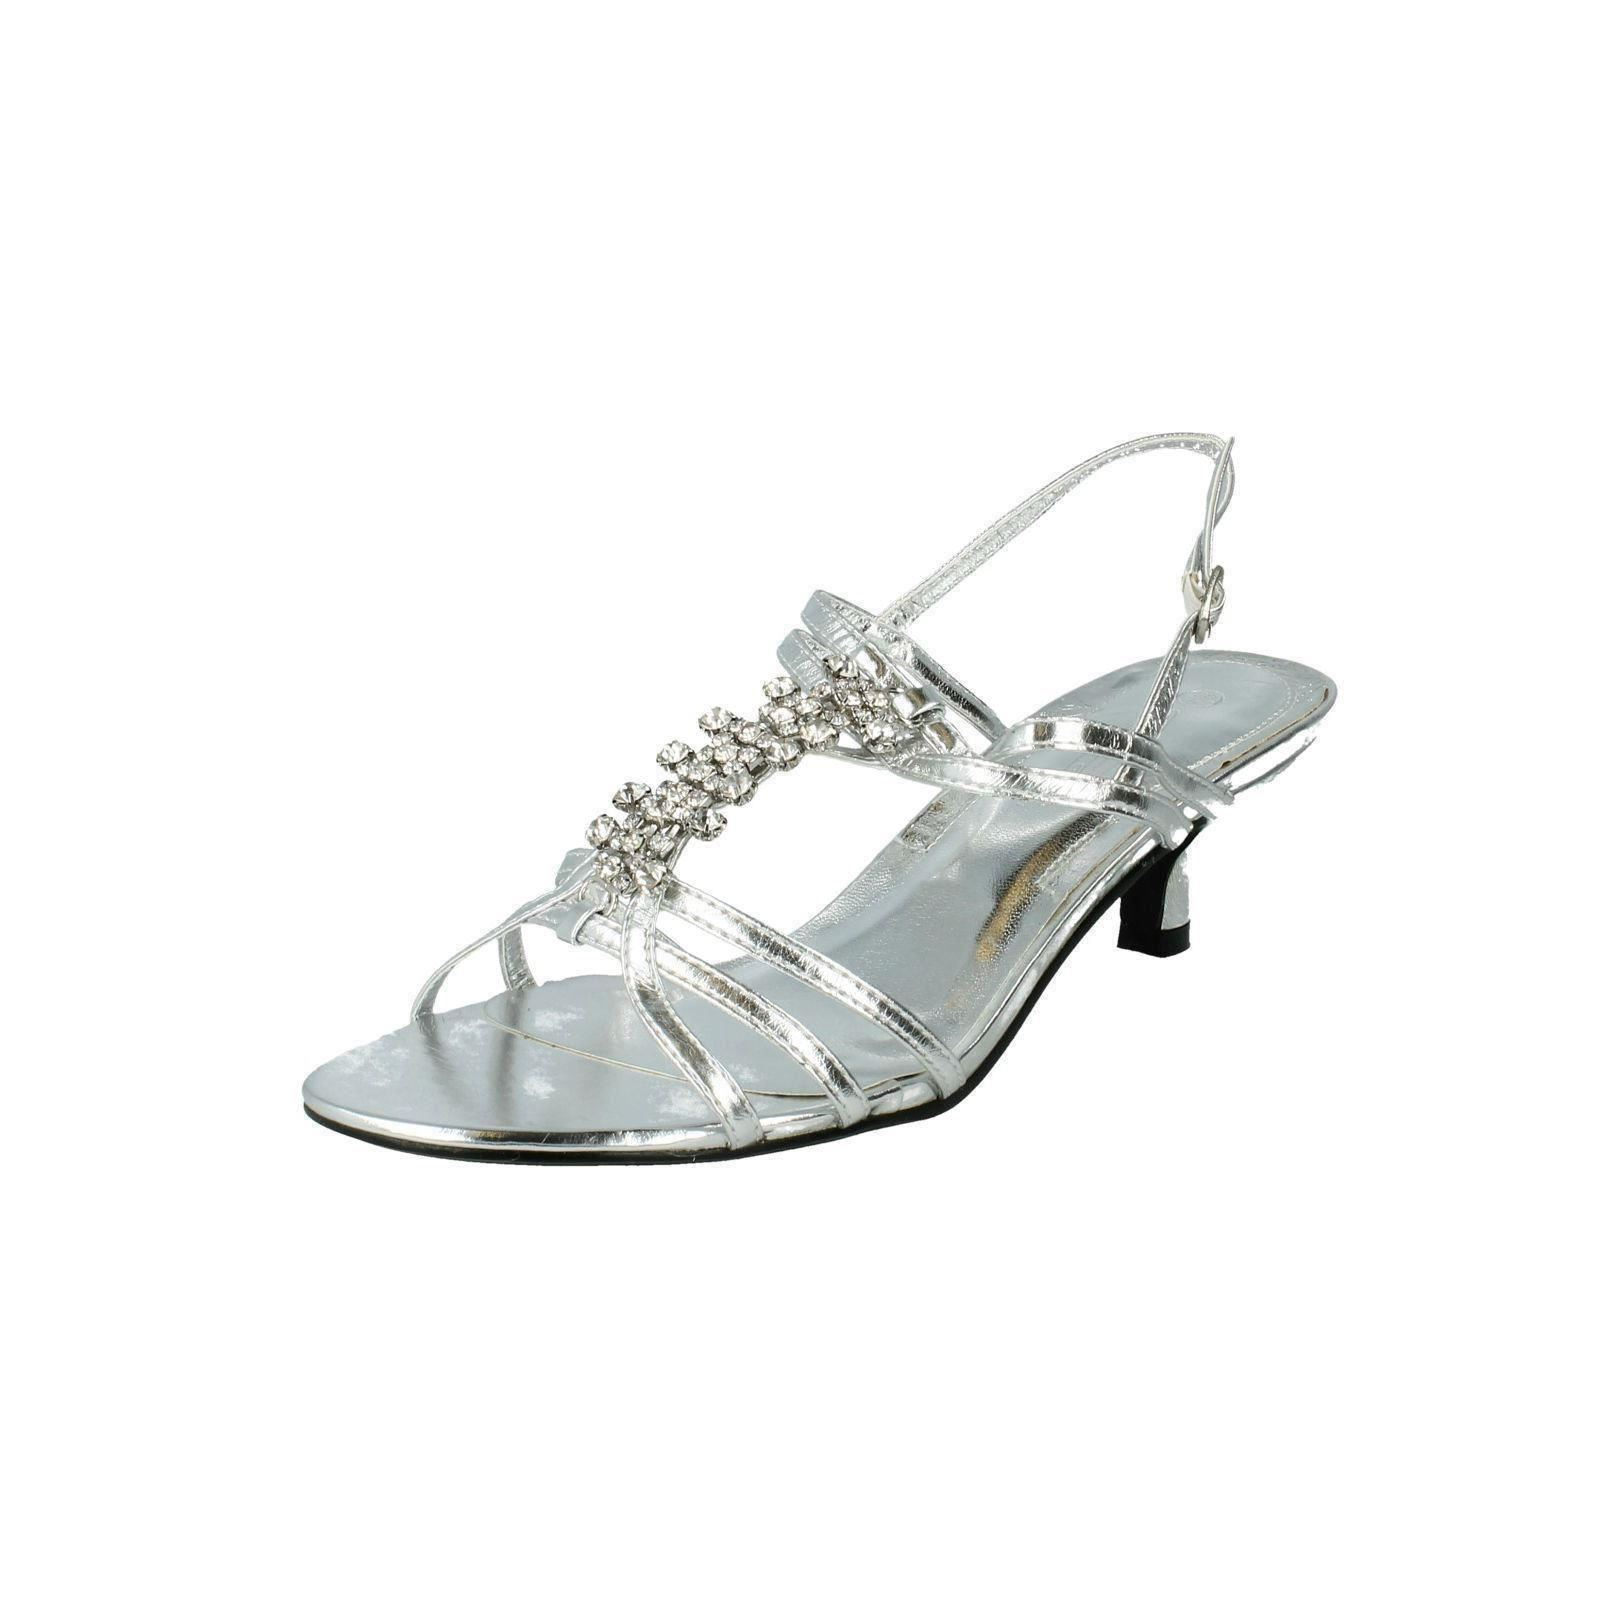 545d8379c1e Ladies Mid Heel Diamante Trim Ankle Strap Sandals Spot on Silver UK 4  Standard. About this product. Picture 1 of 9  Picture 2 of 9 ...